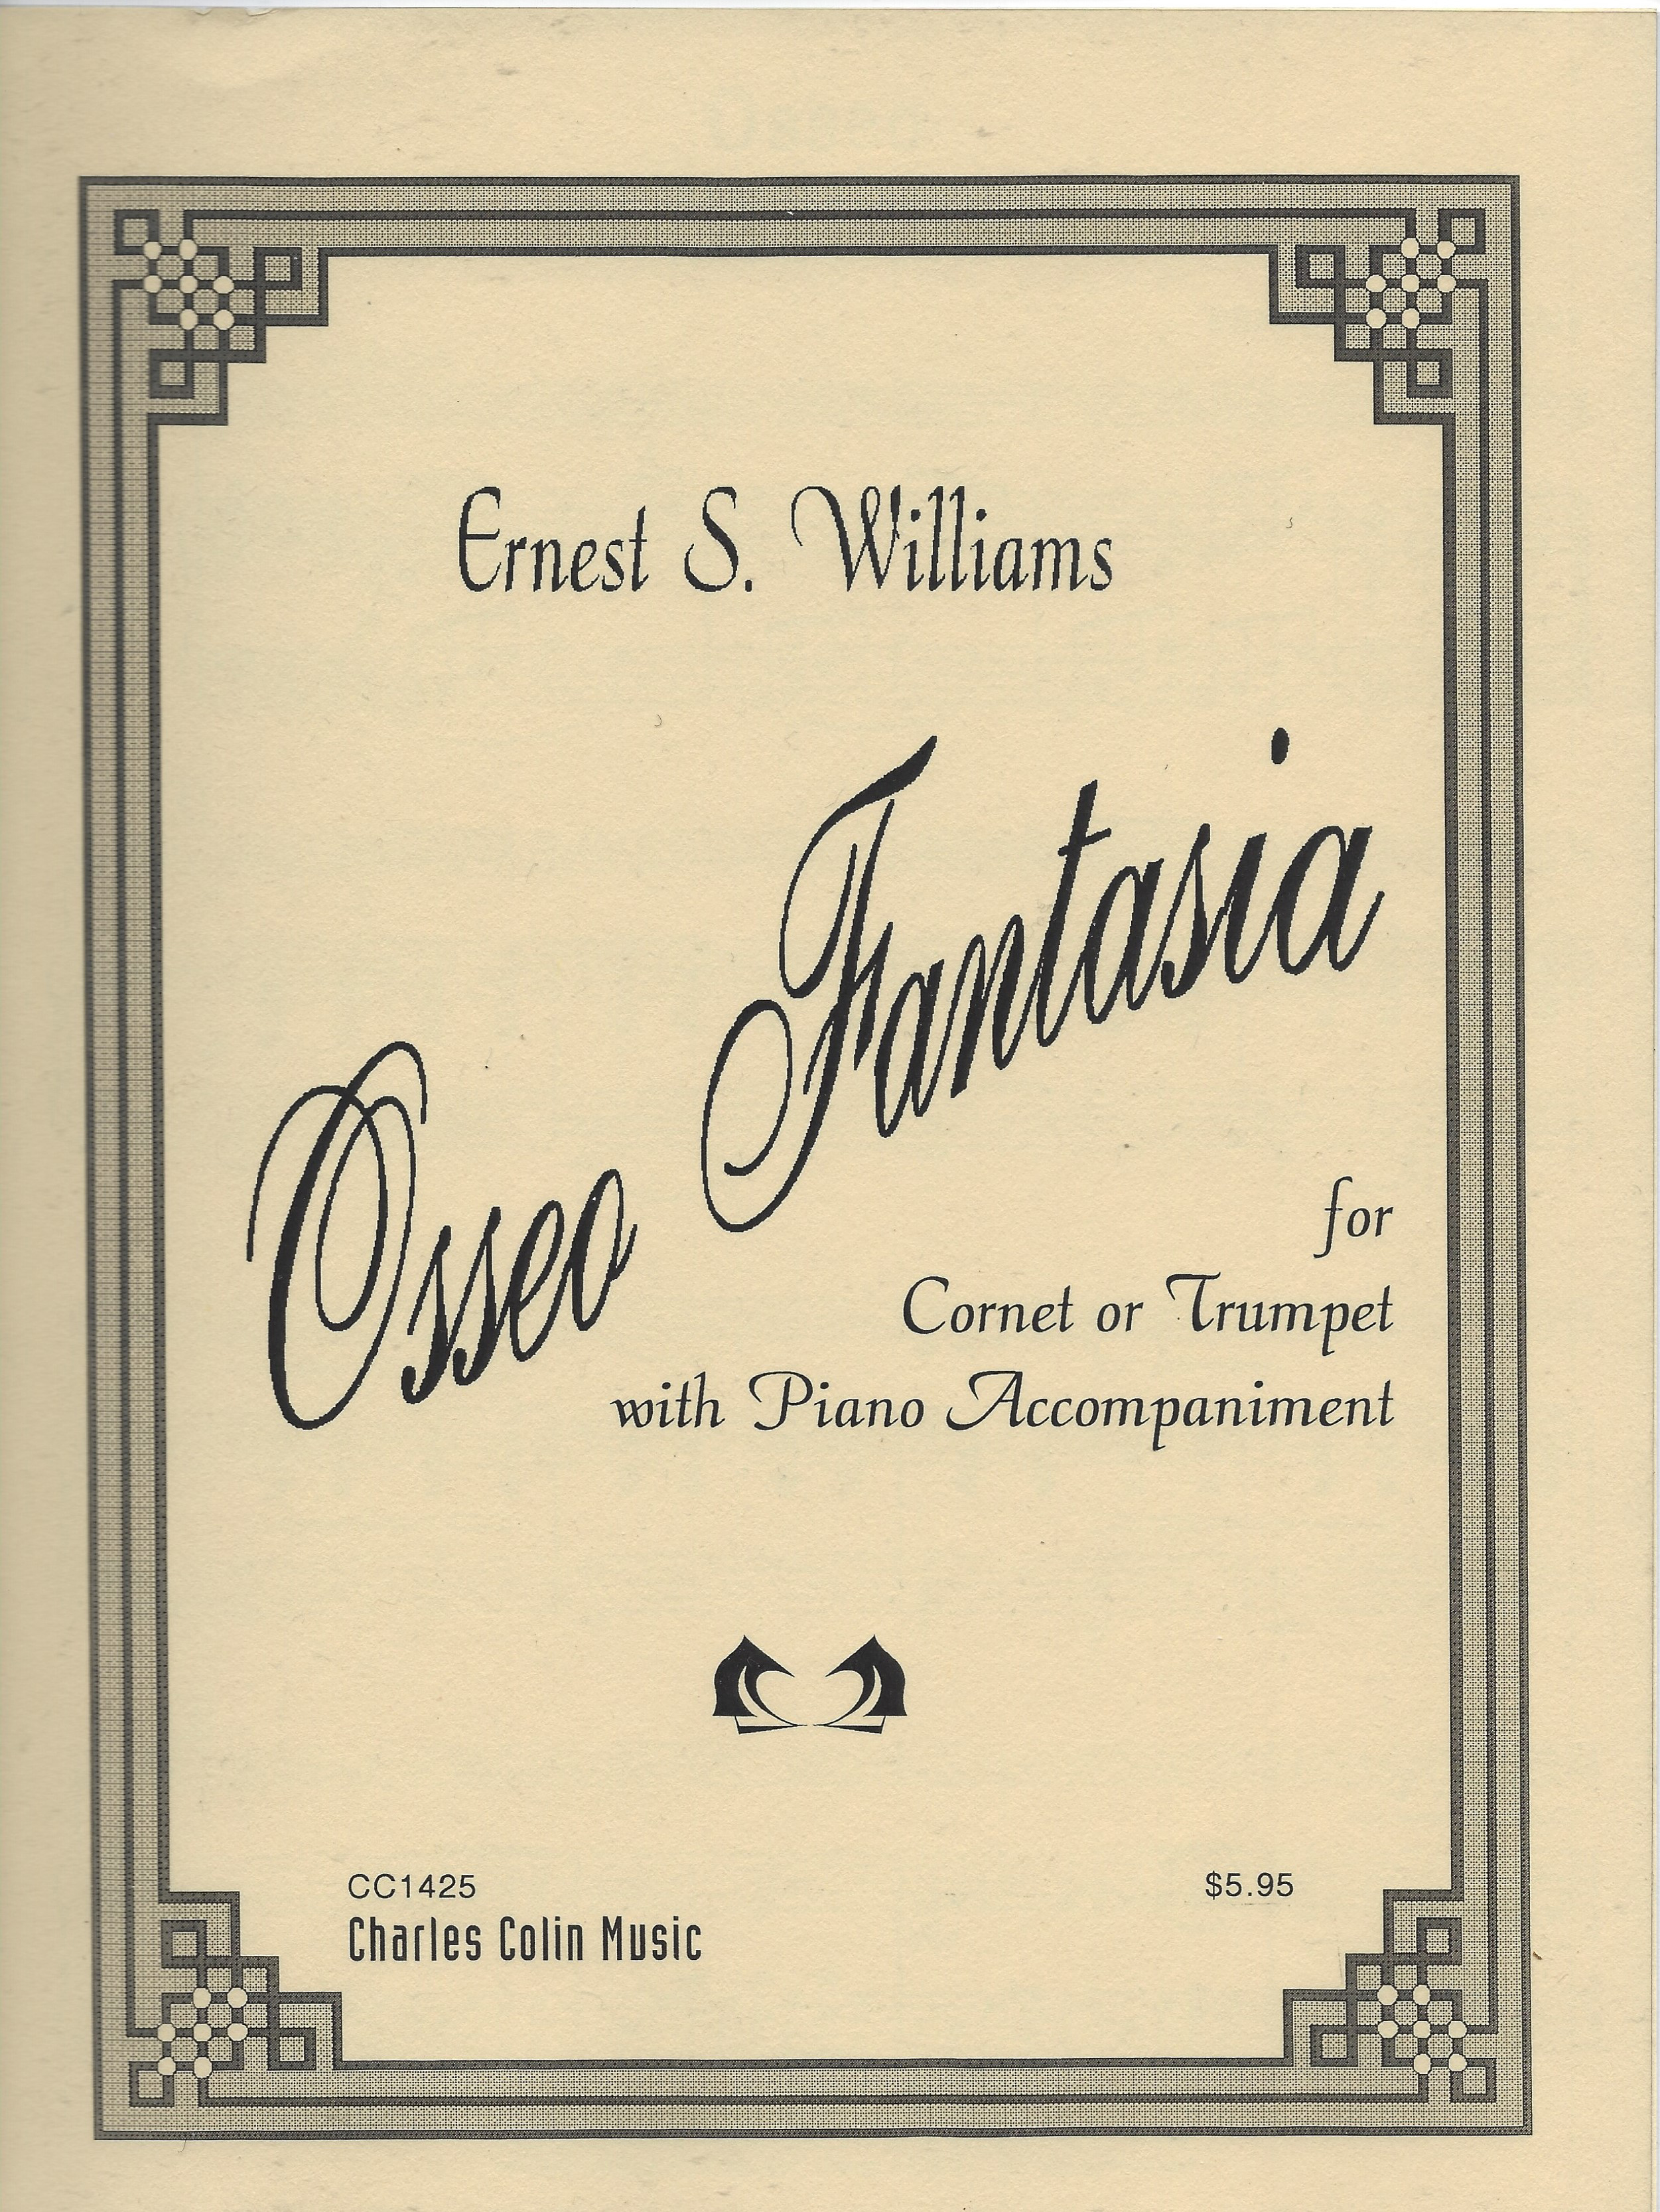 Osseo Fantasia fir Cornet or Trumpet with Piano Accompaniment